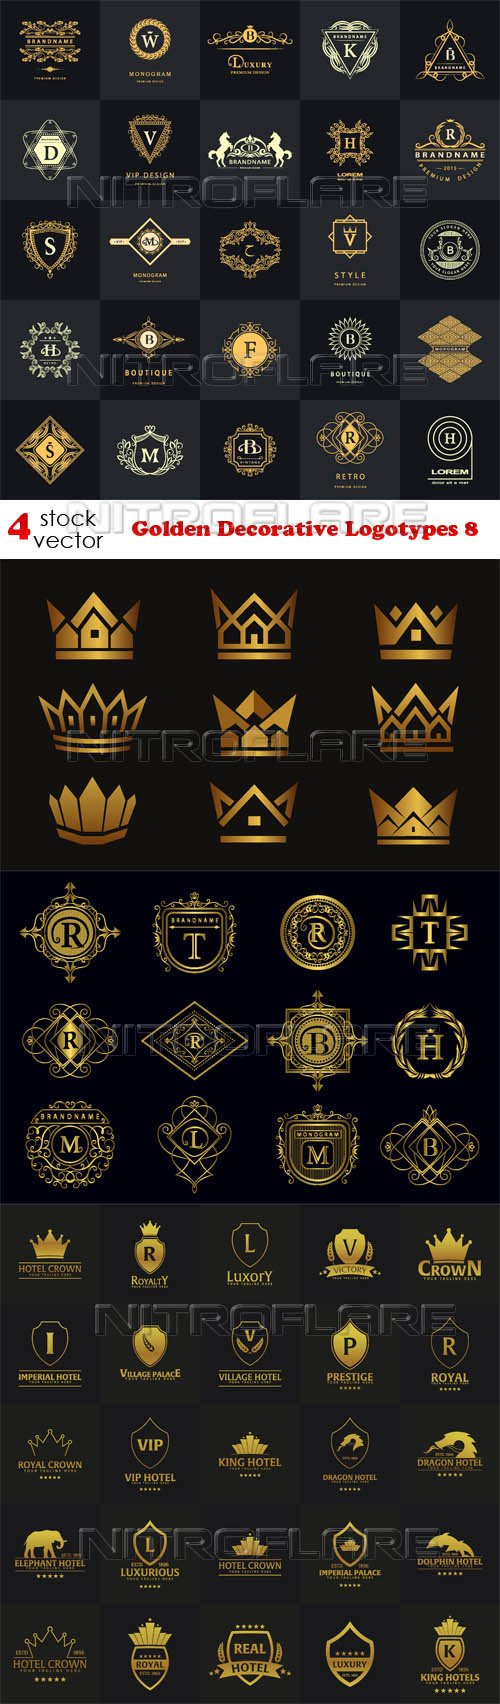 Vectors - Golden Decorative Logotypes 8